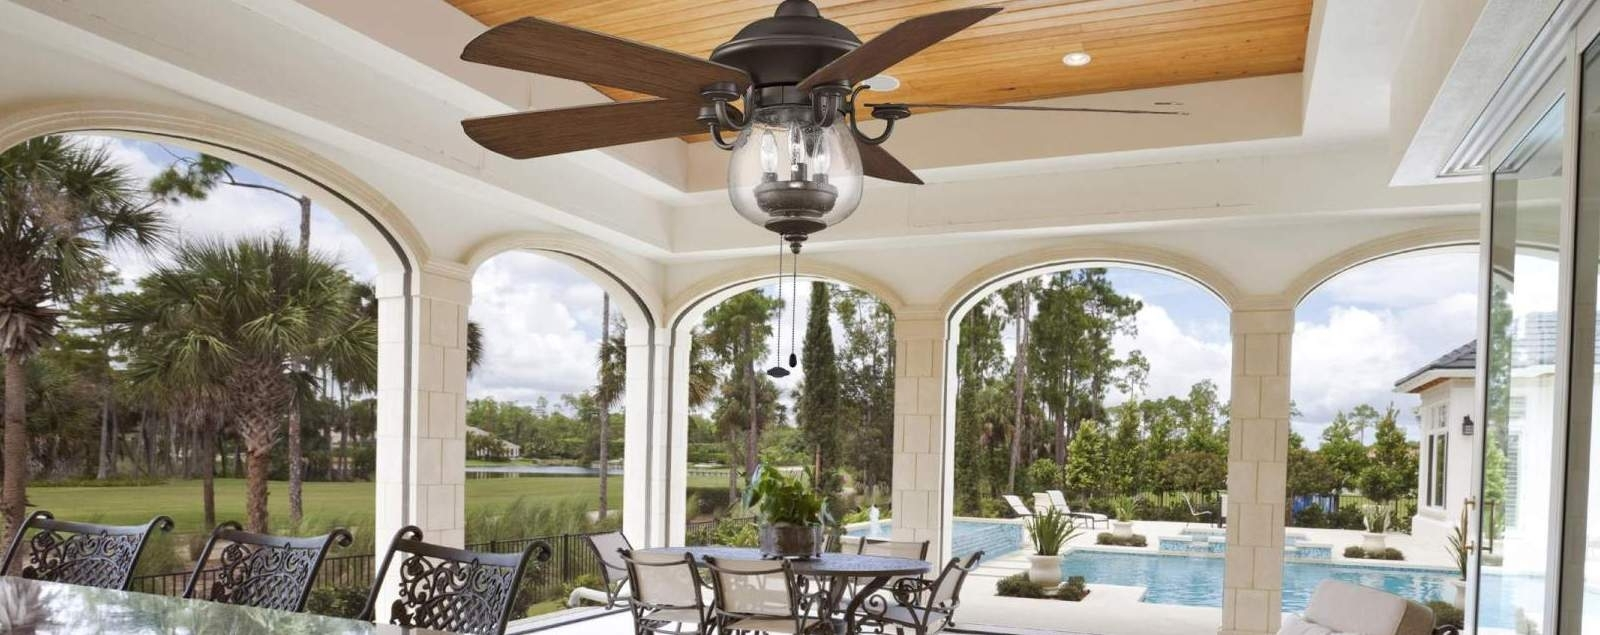 Outdoor Ceiling Fans With Lights Damp Rated Within Most Up To Date Outdoor Ceiling Fans – Shop Wet, Dry, And Damp Rated Outdoor Fans (View 10 of 20)